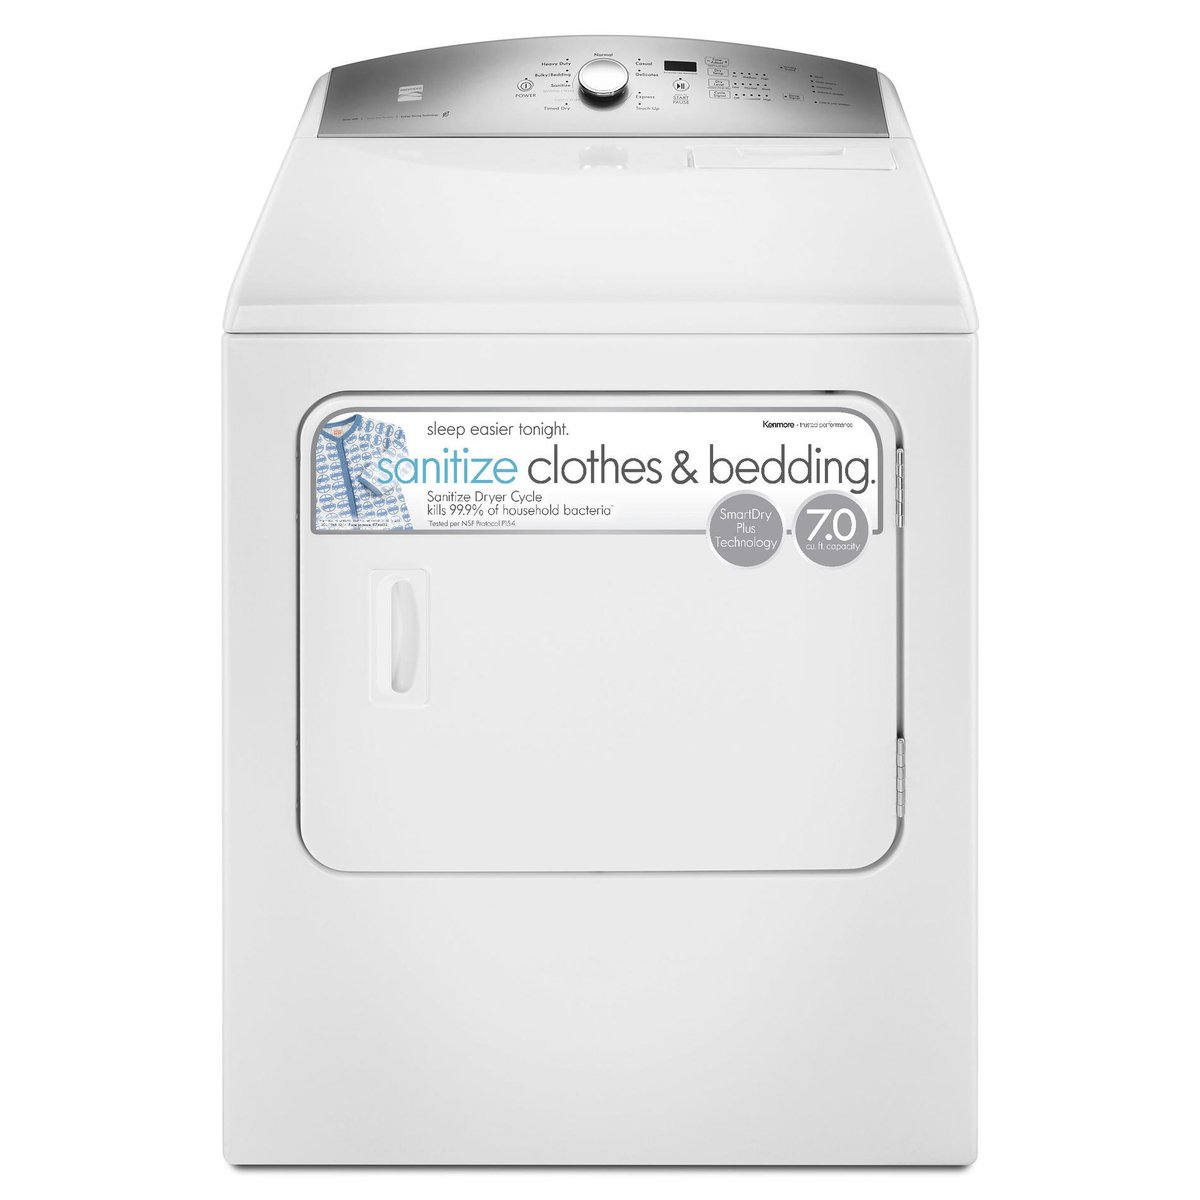 Top 5 Best Washing Machines (2020 Reviews & Buying Guide) 4